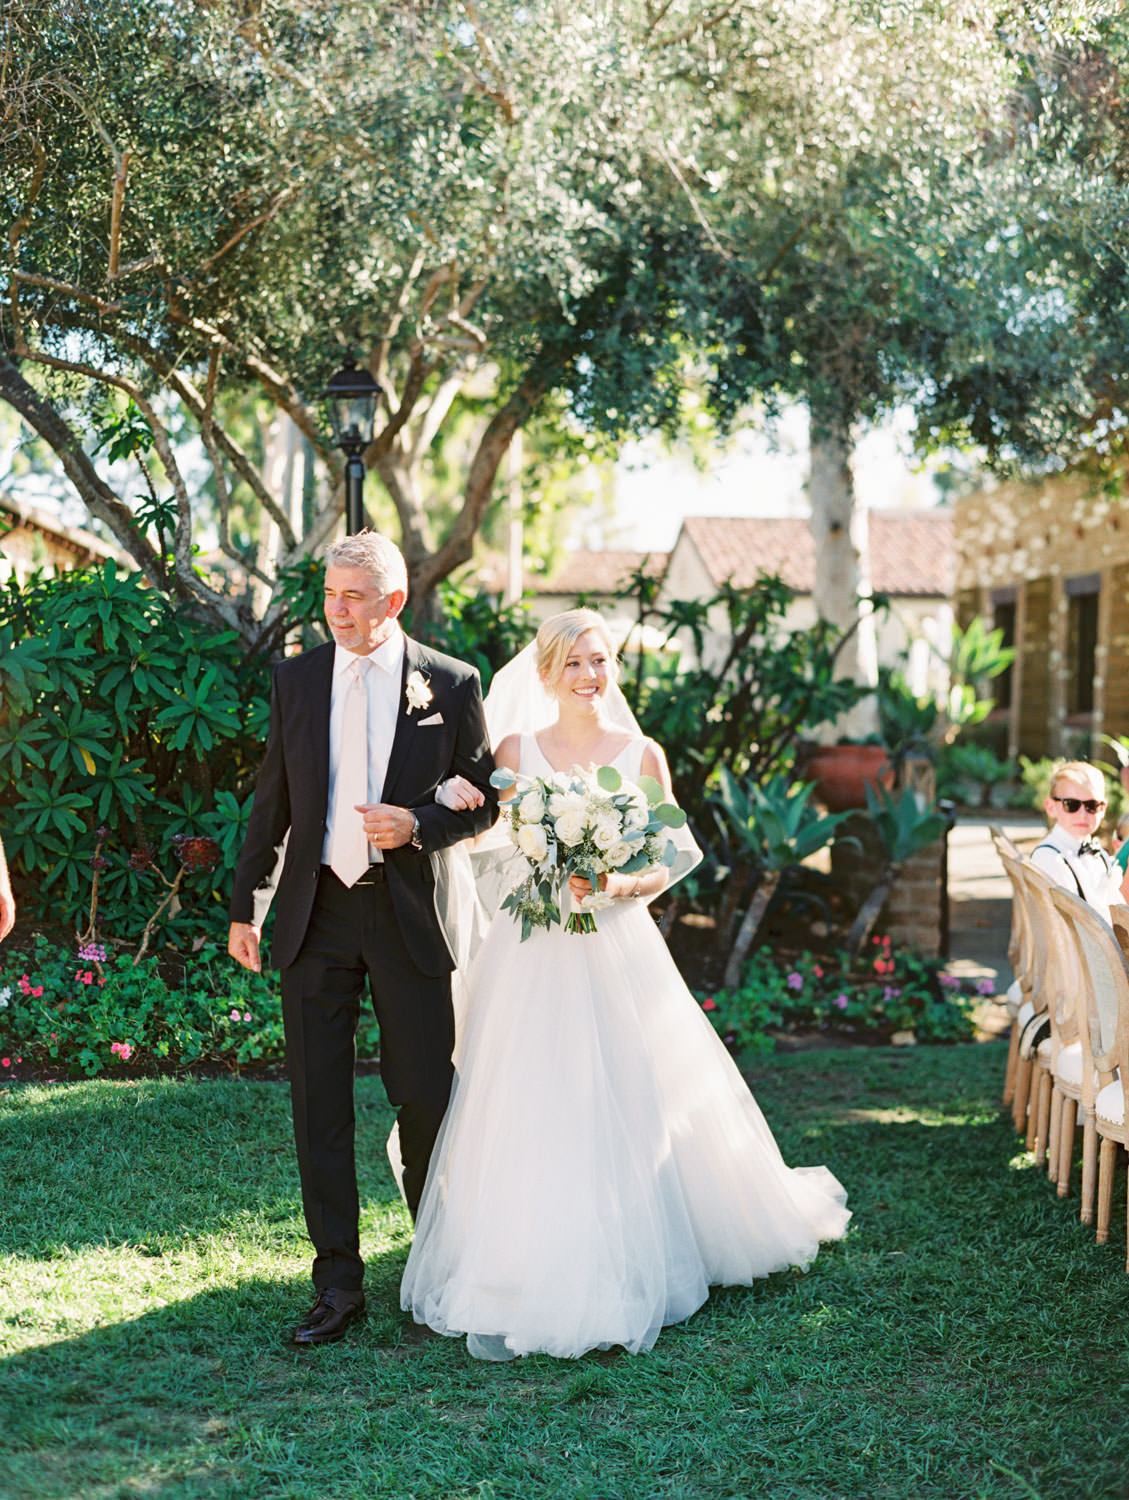 Father walking the bride down the aisle with bridal bouquet of eucalyptus, white dahlias and roses. Olive Lawn ceremony wedding shot on film by Cavin Elizabeth Photography